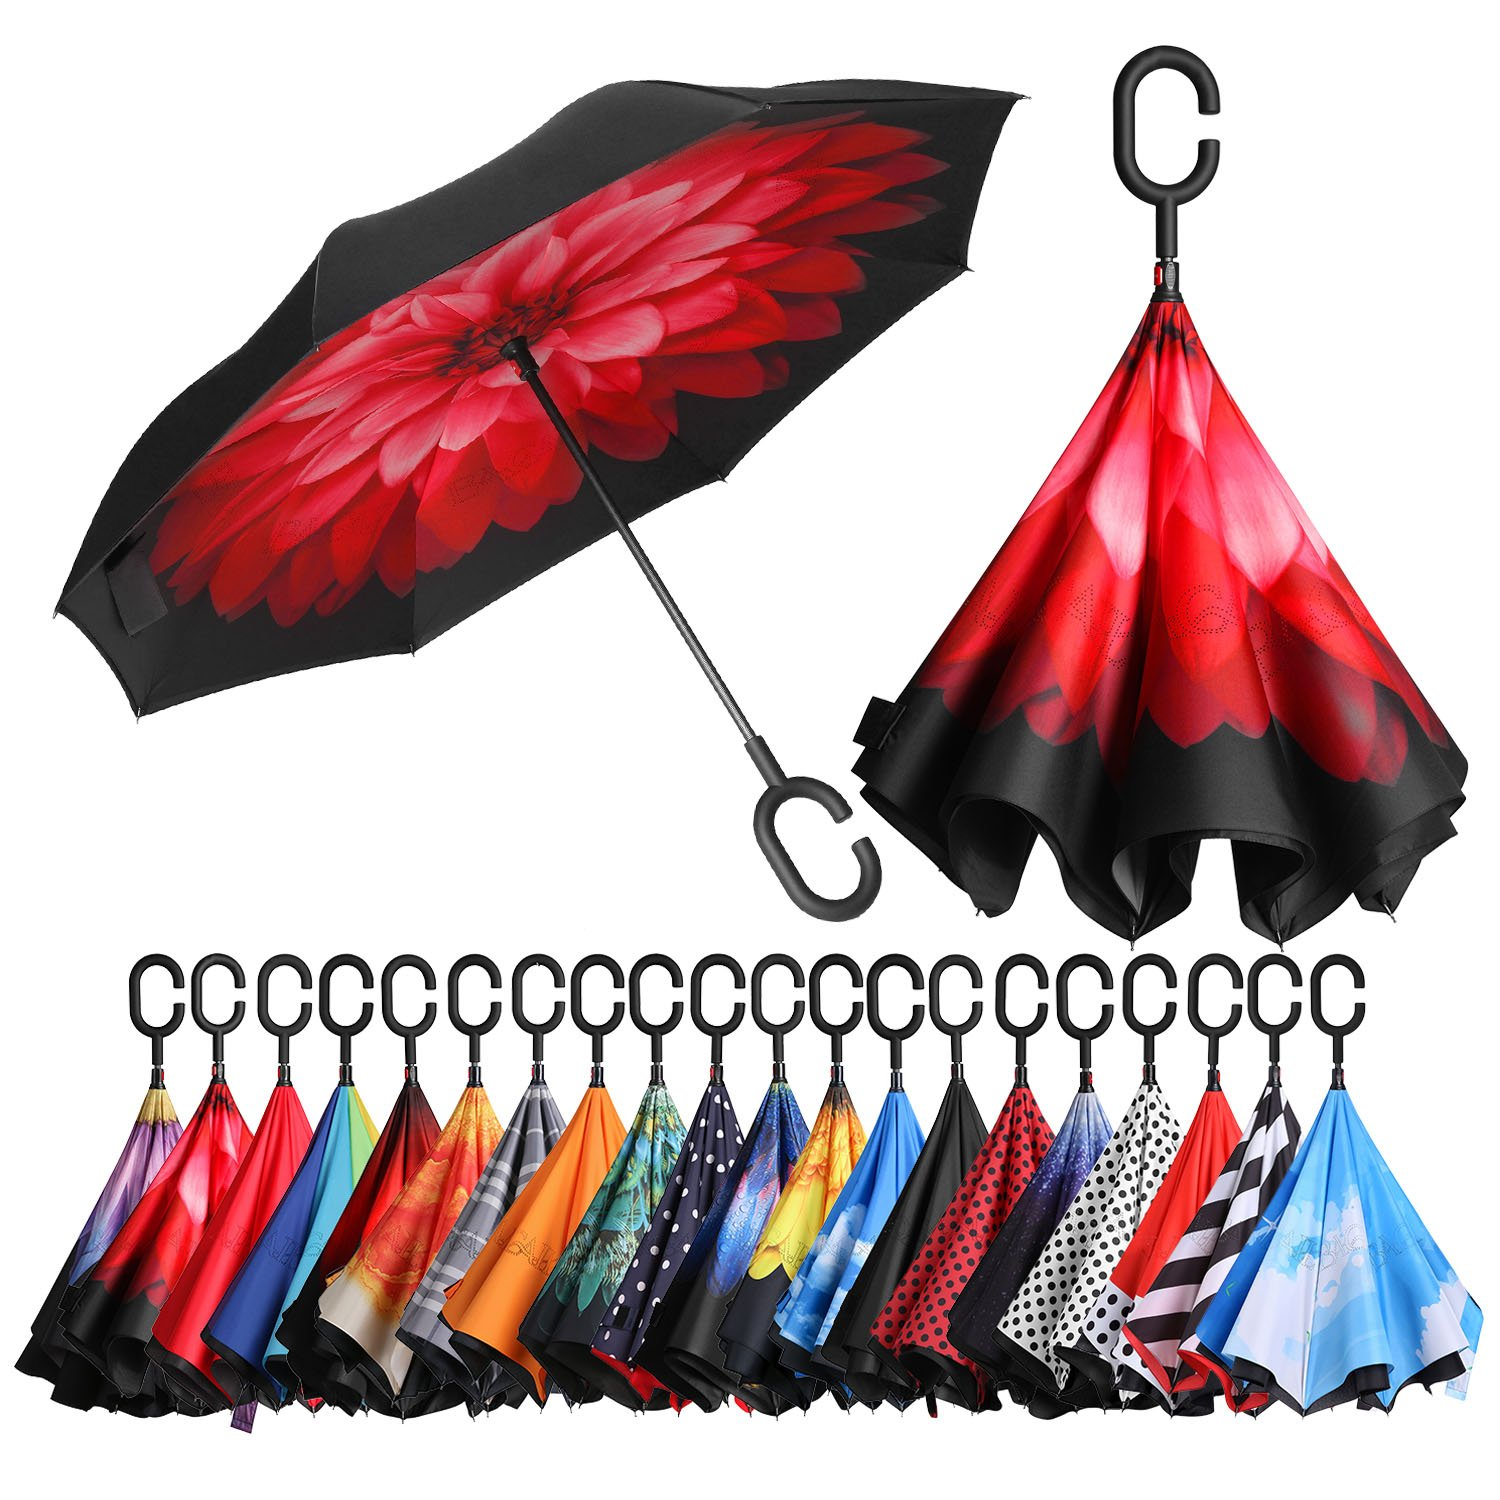 BAGAIL Double Layer Inverted Umbrellas Reverse Folding Umbrella Windproof UV Protection Big Straight Umbrella for Car Rain Outdoor with C-Shaped Handle U002-black dot